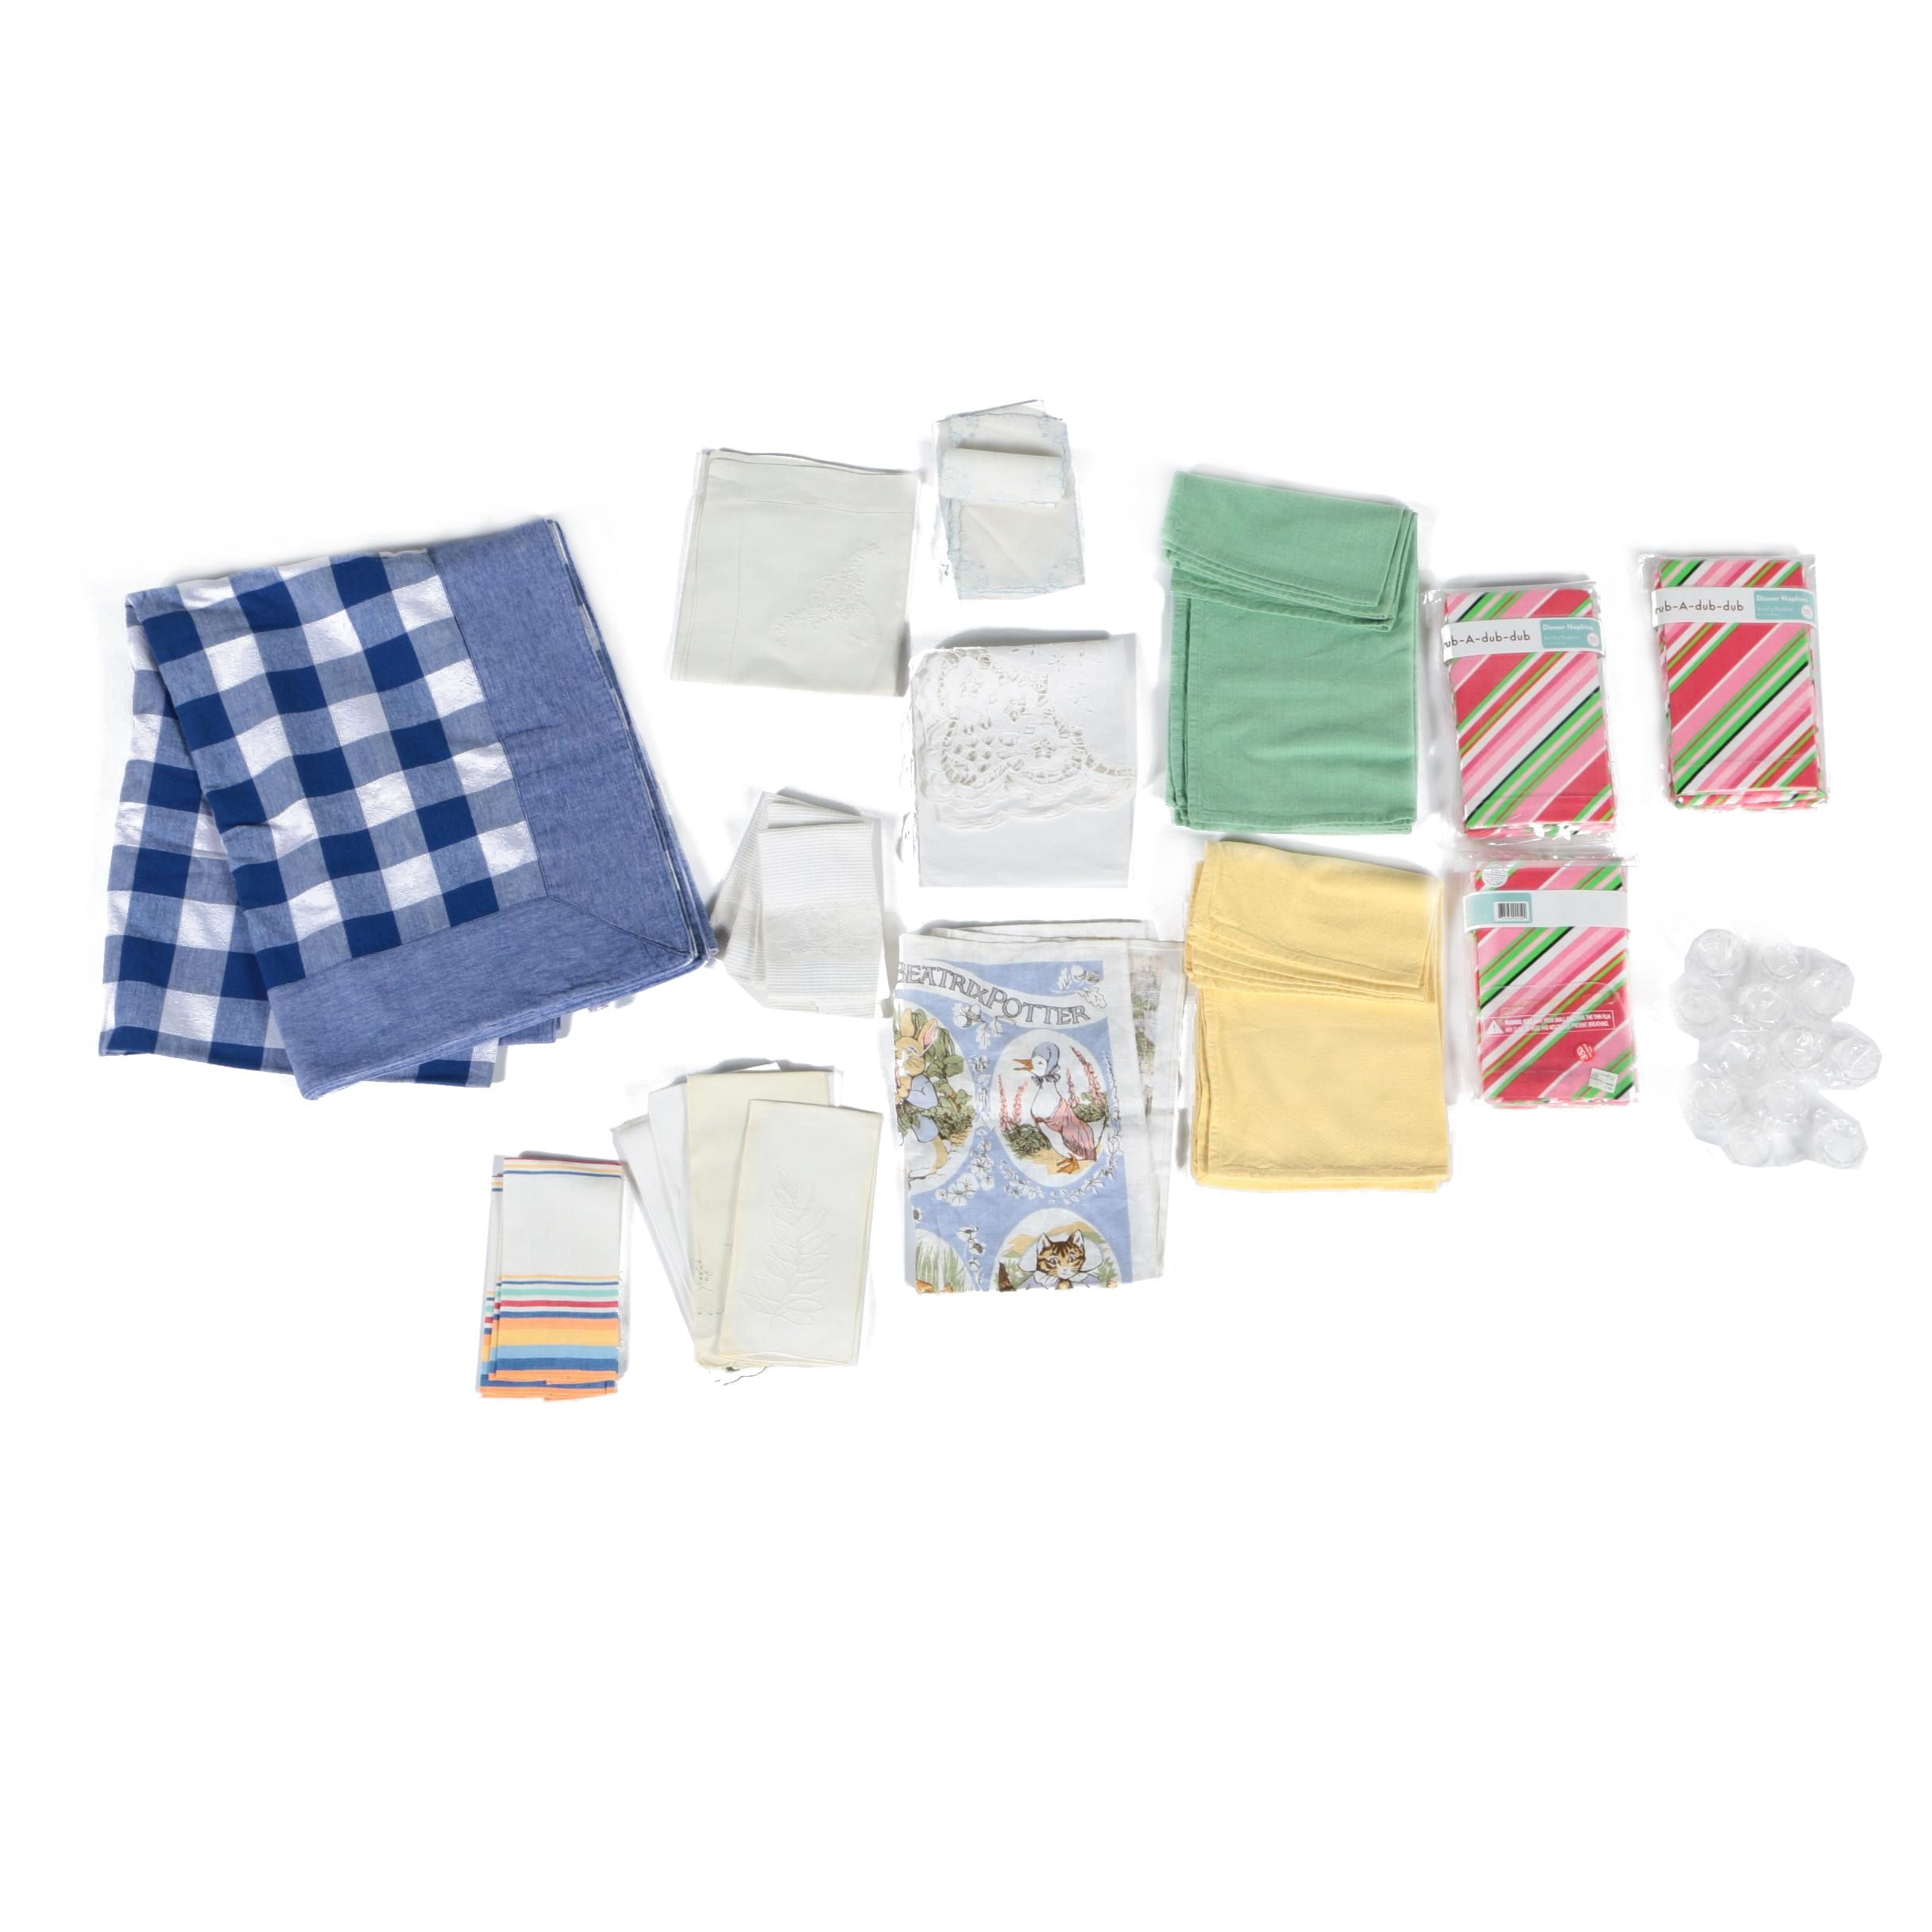 Kitchens Linens Featuring Napkins and Tablecloths